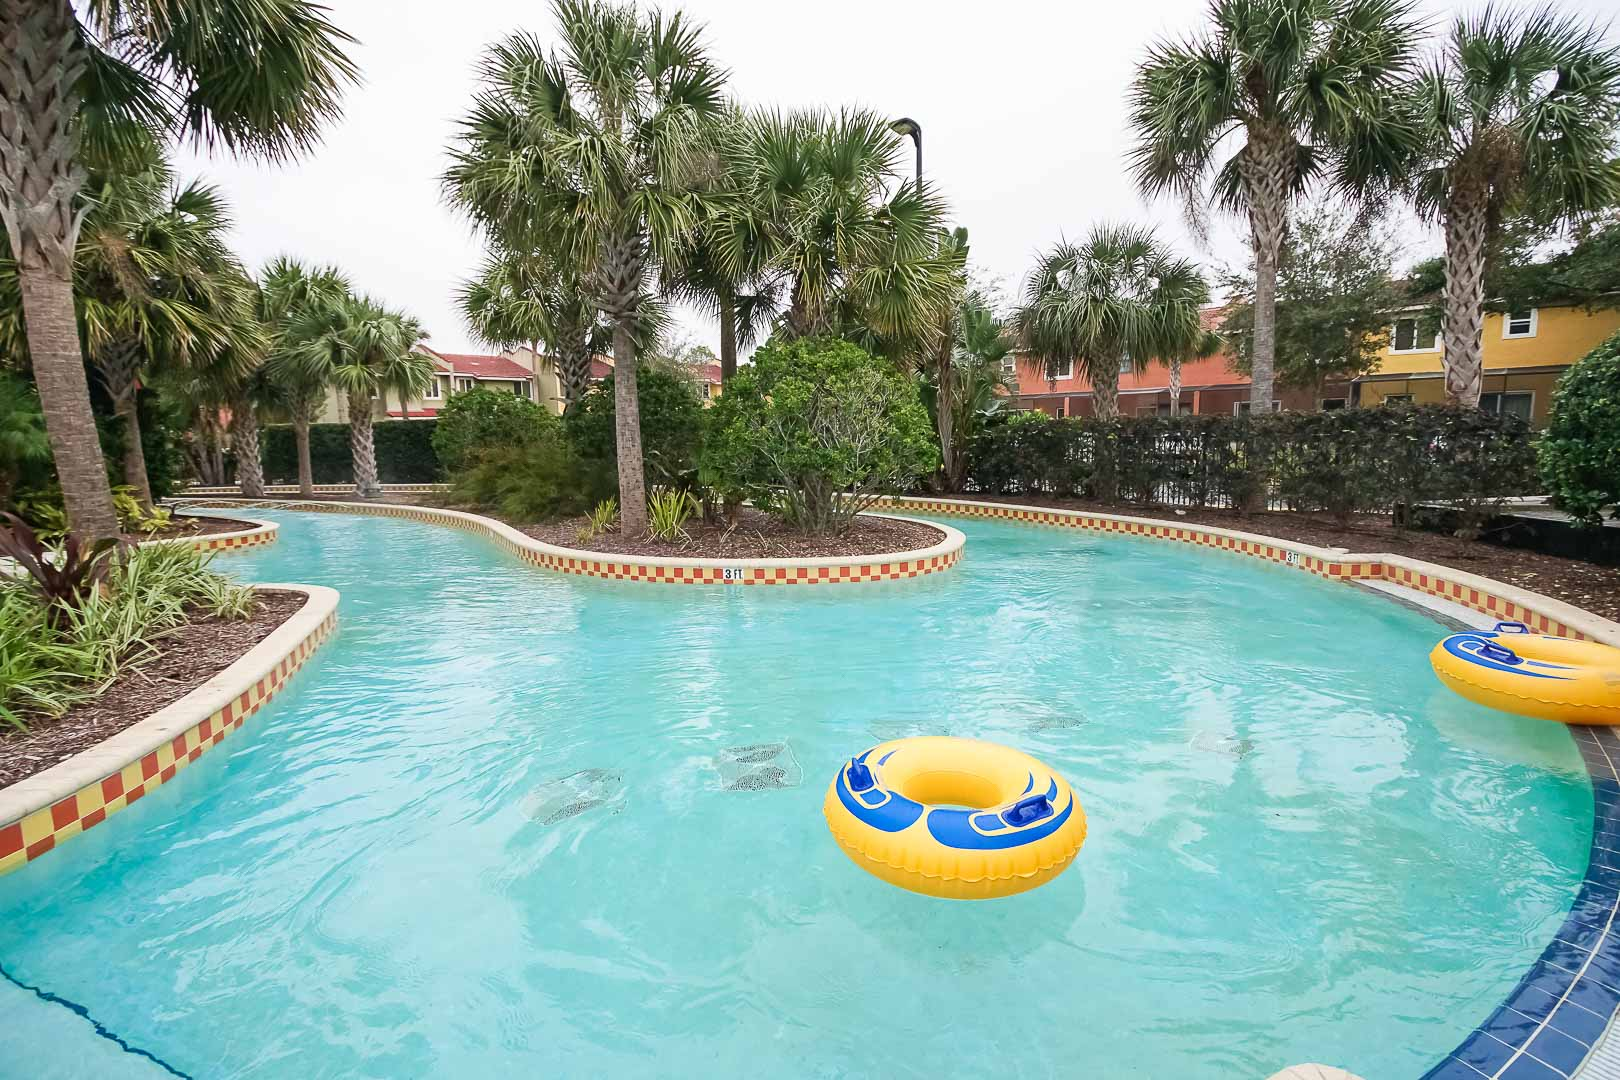 An outdoor lazy river pool at VRI's Fantasy World Resort in Florida.